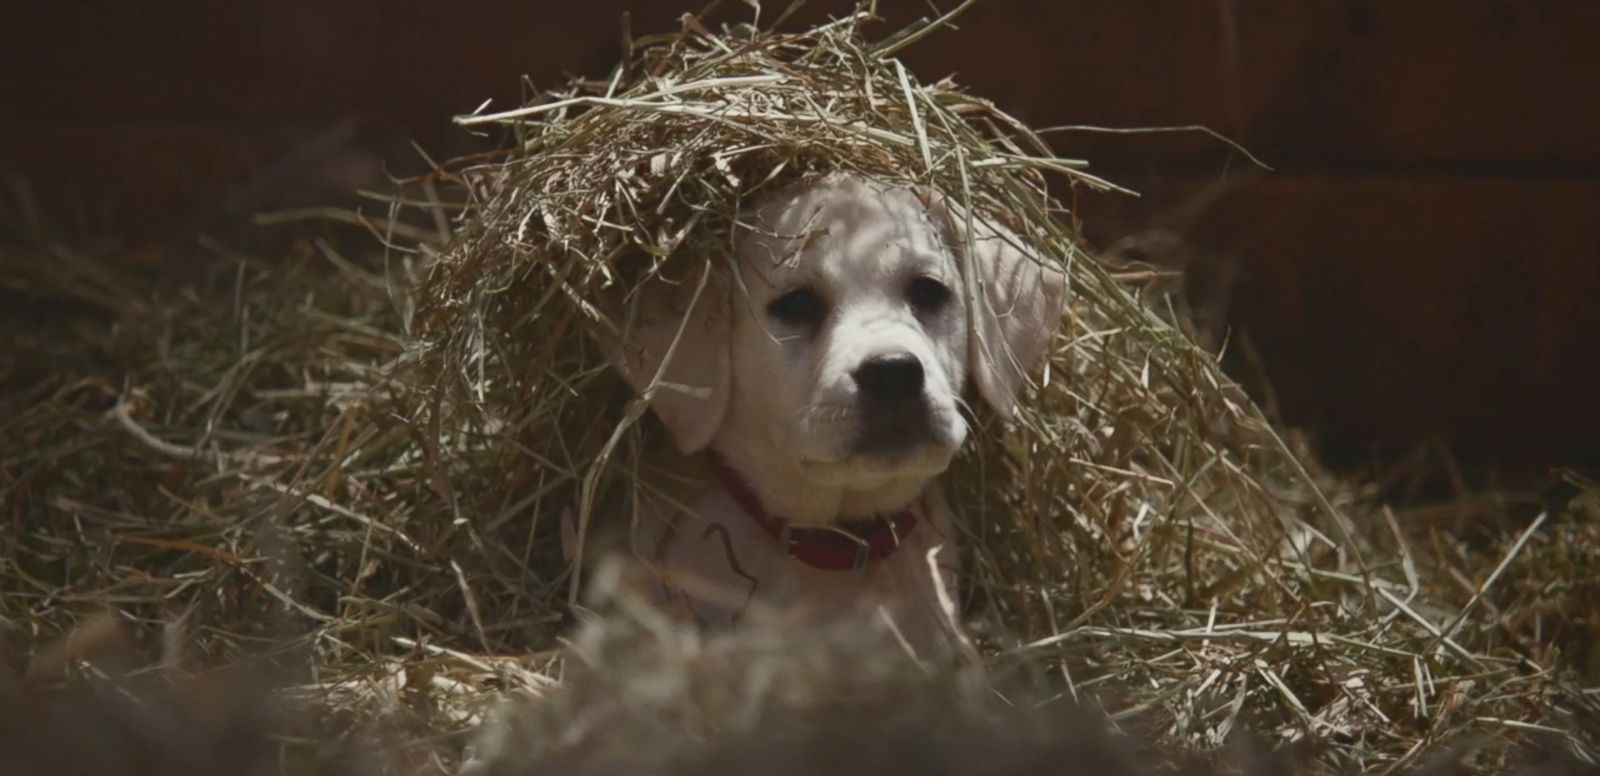 VIDEO: Watch the full commercial about a puppy reuniting with his Clydesdale best friend in Budweiser's spot for Super Bowl XLIX.